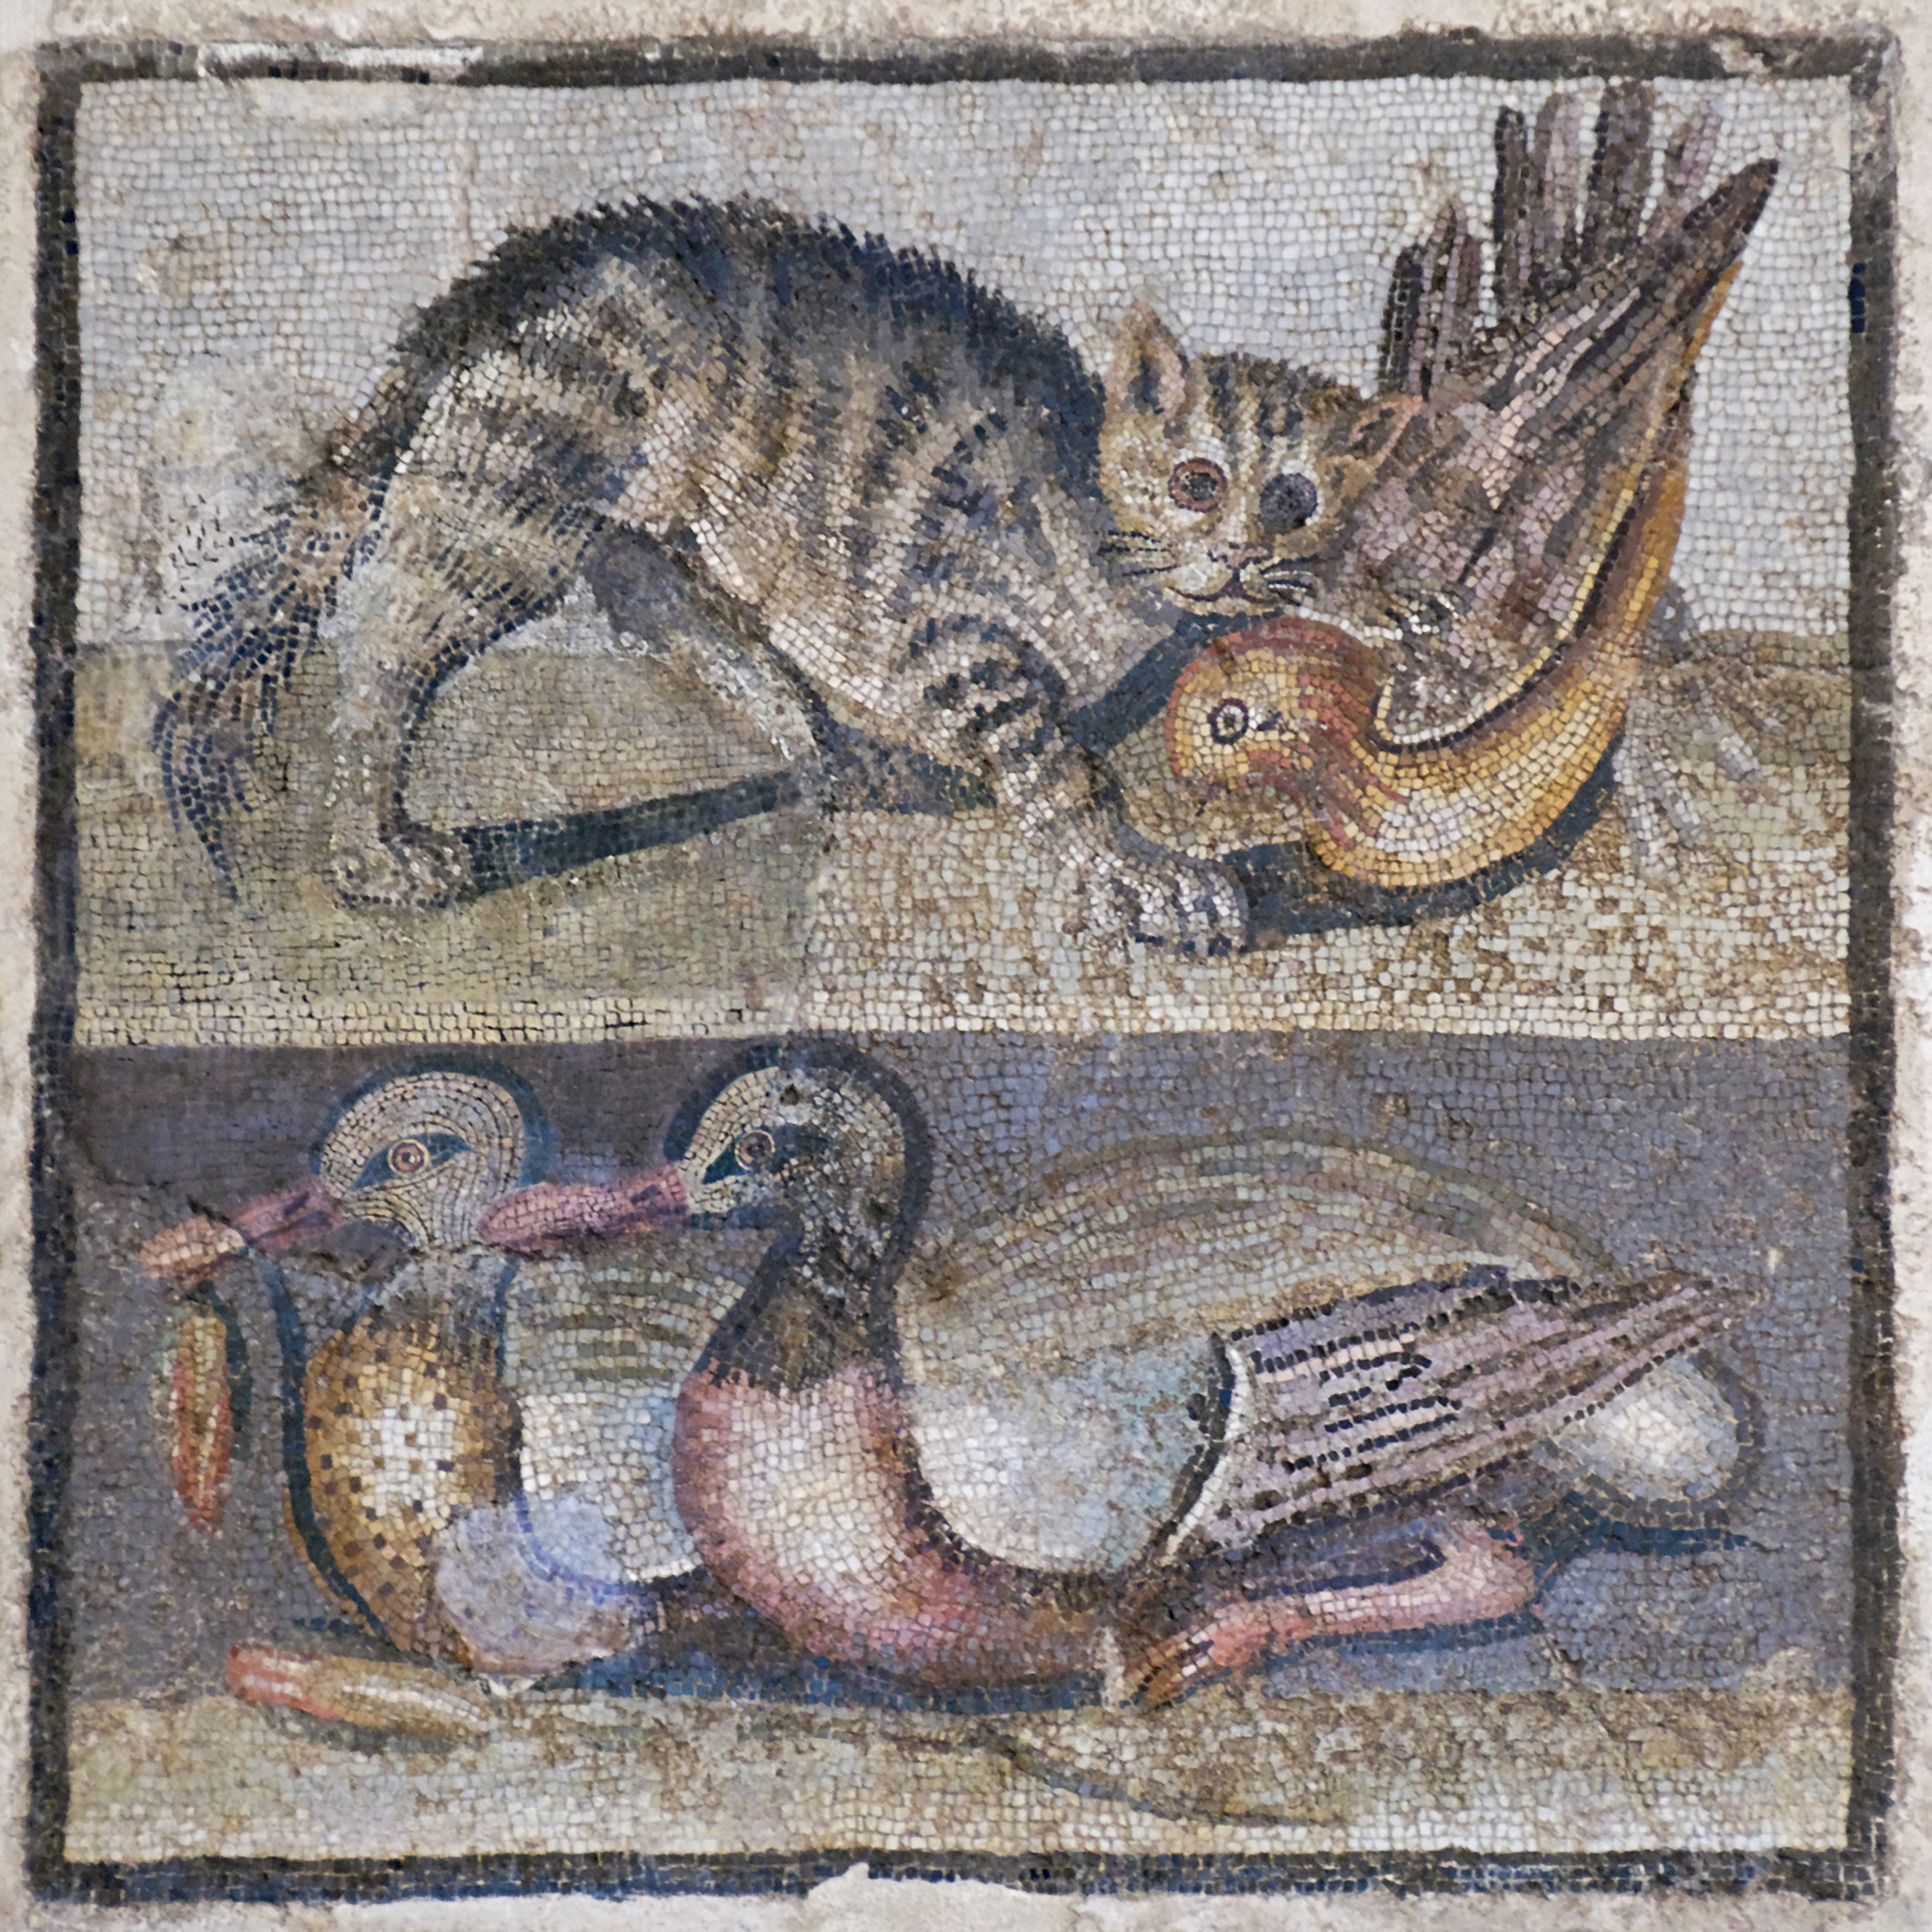 Mosaic_cat_ducks_Massimo_Inv124137.jpg